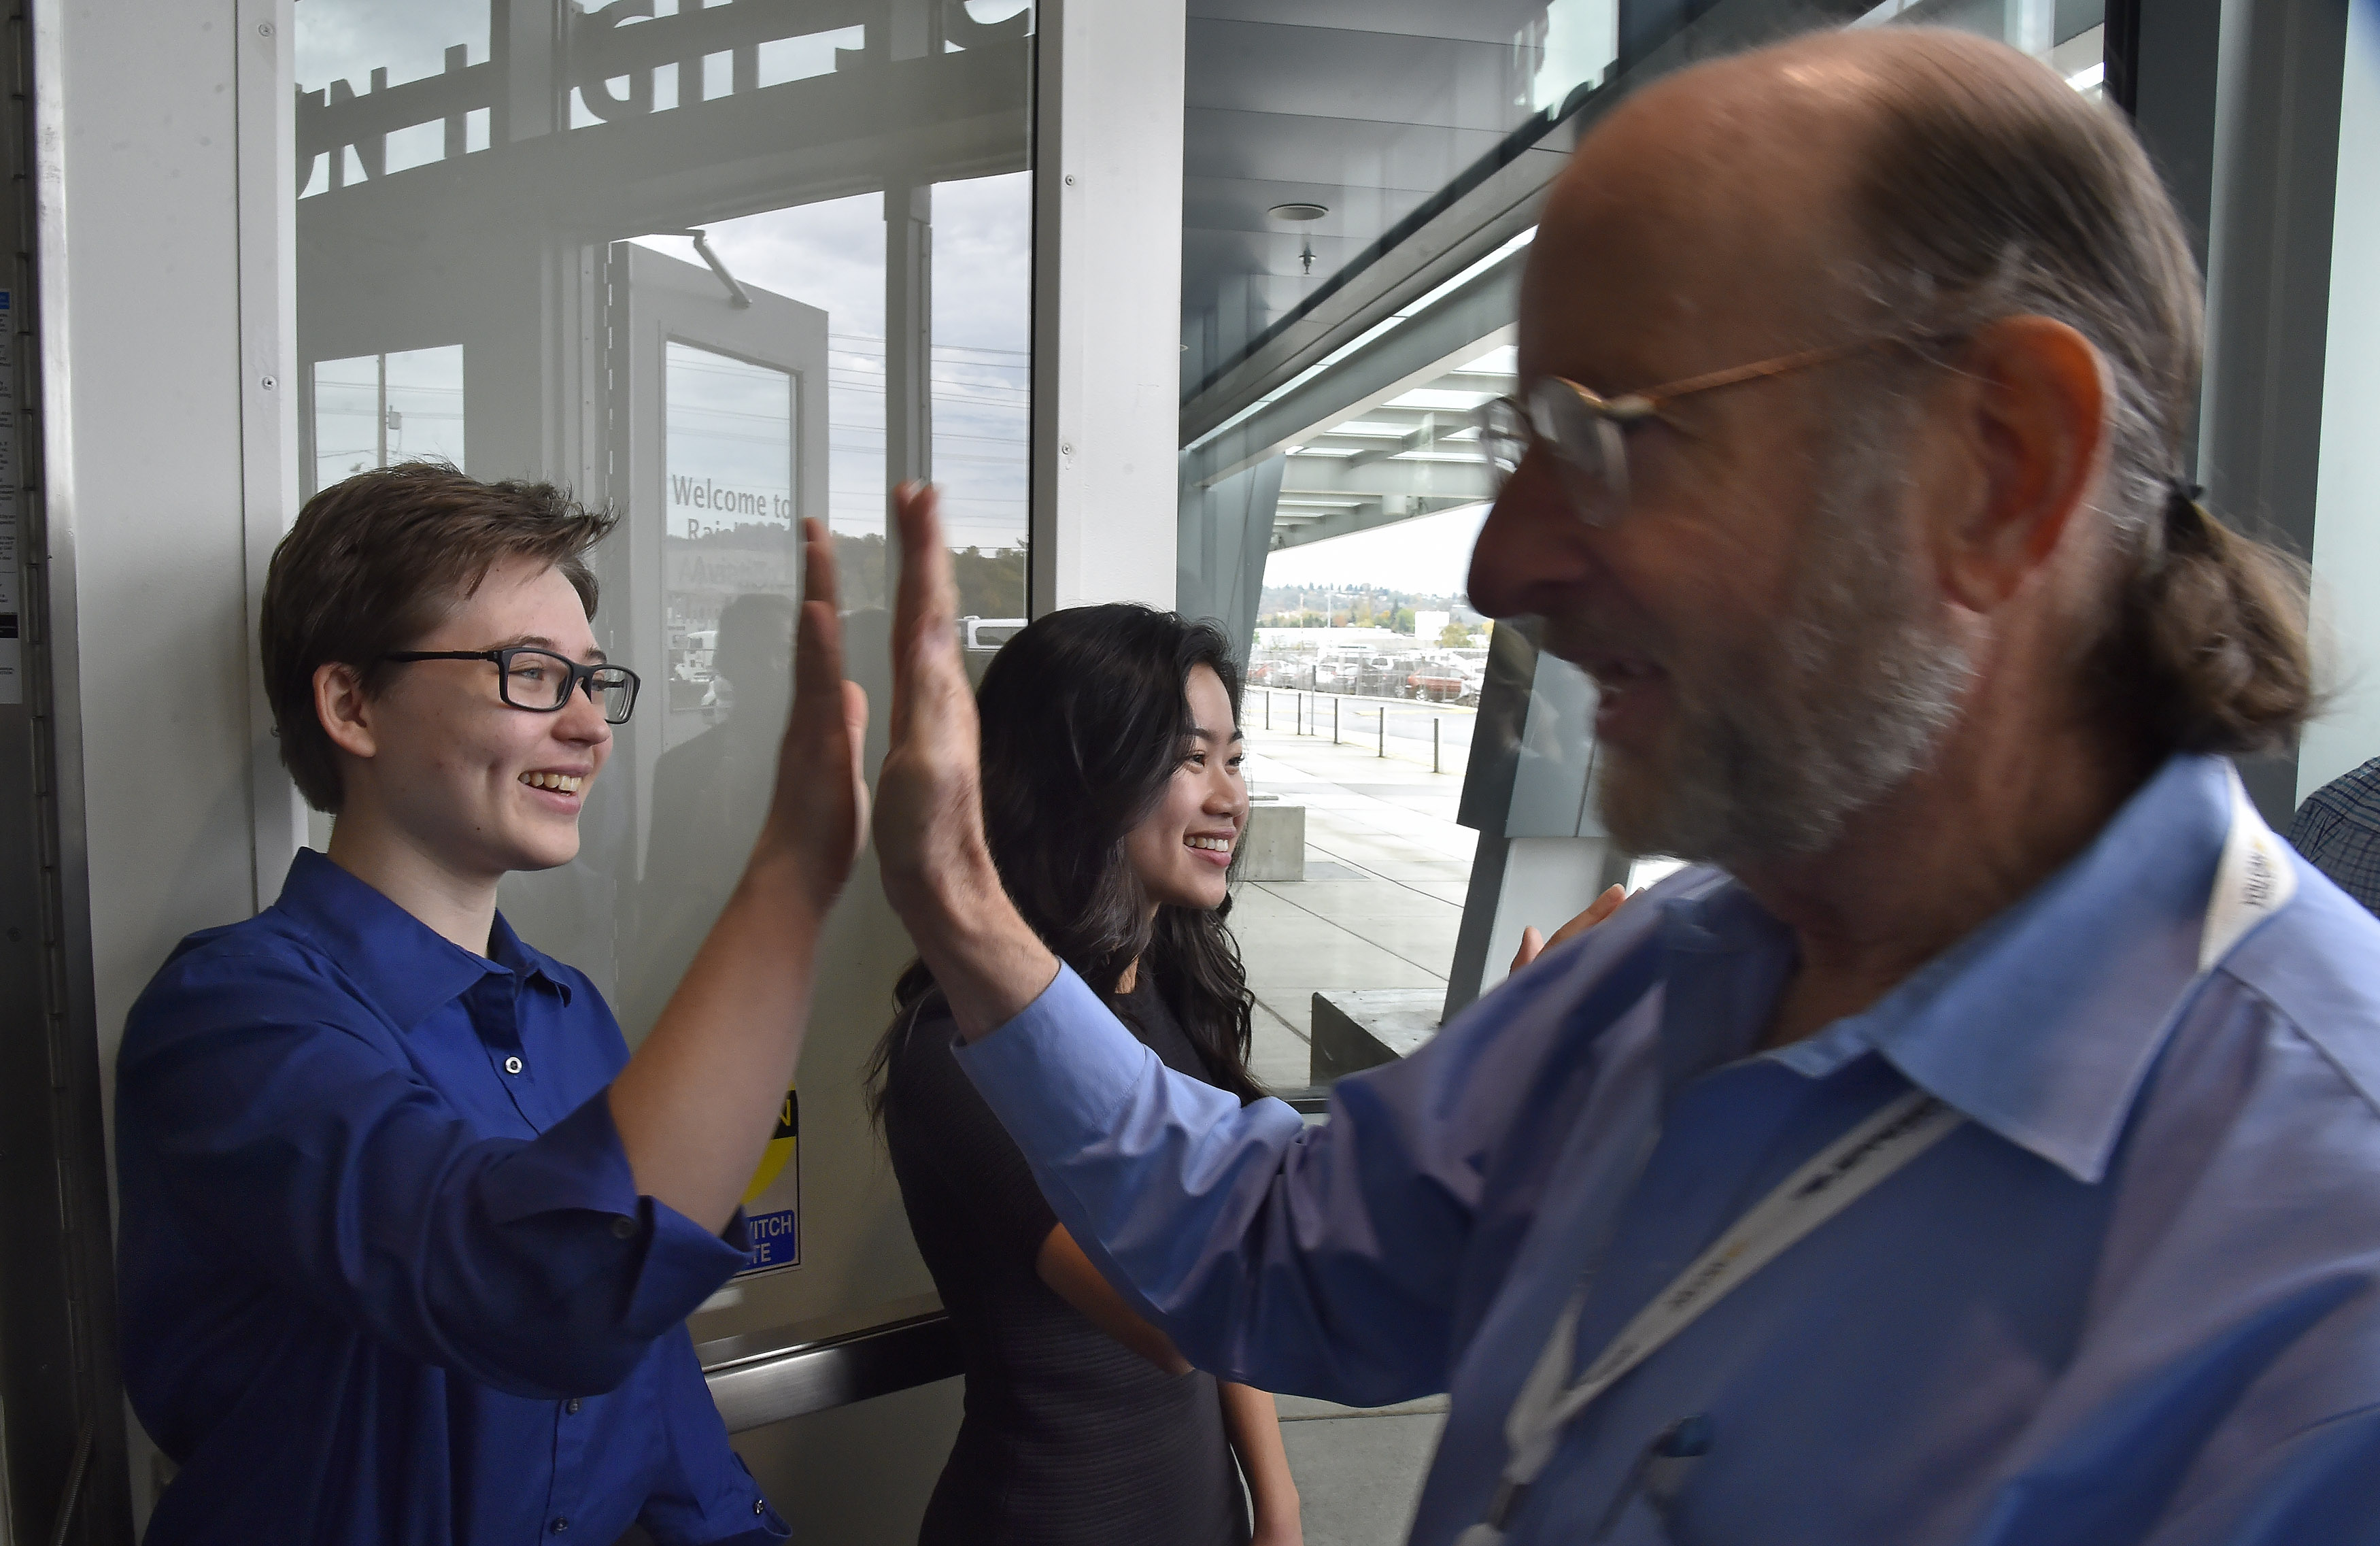 Raisbeck Aviation High School students greet AOPA High School Symposium attendees with a high-five during a tour of the facility in Seattle, Nov. 7. Photo by David Tulis.